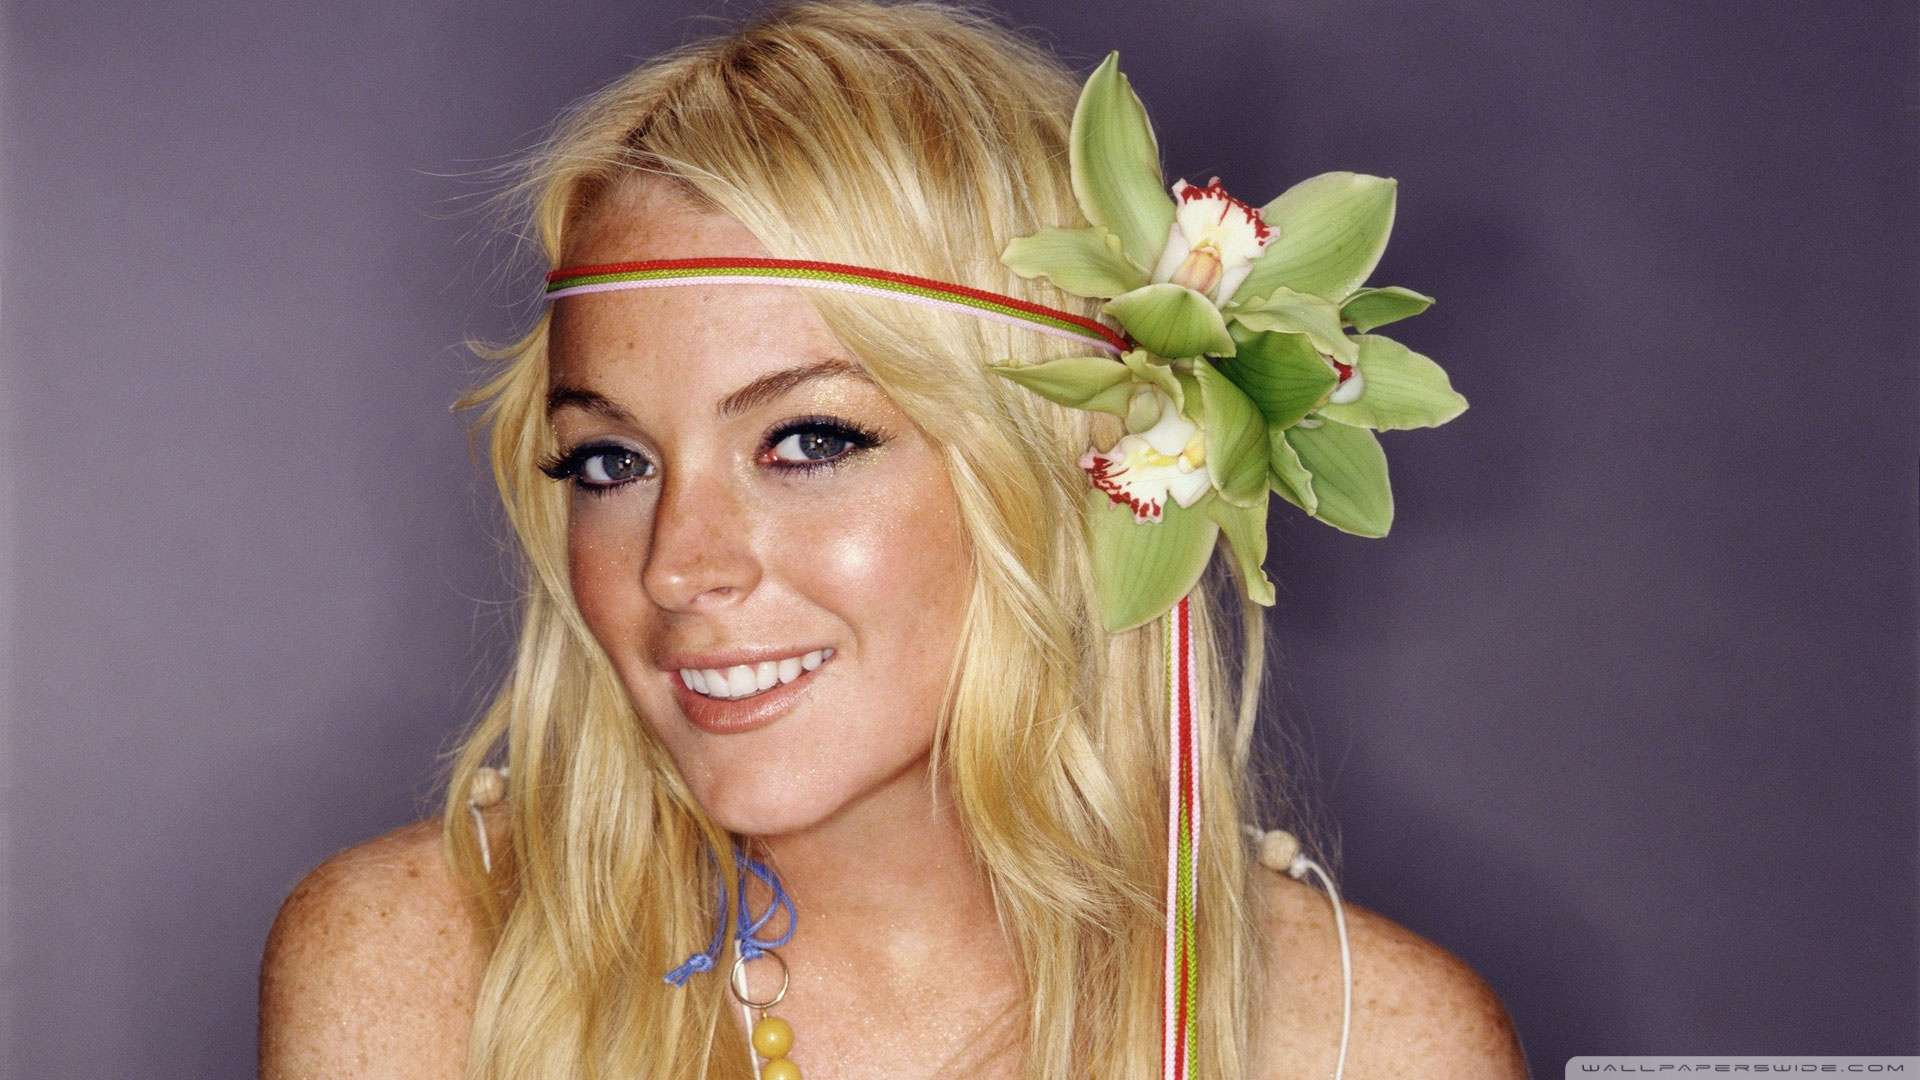 Lindsay Lohan 1 Wallpapers : Hd Wallpapers Beautiful Love Pictures For Facebook Timeline